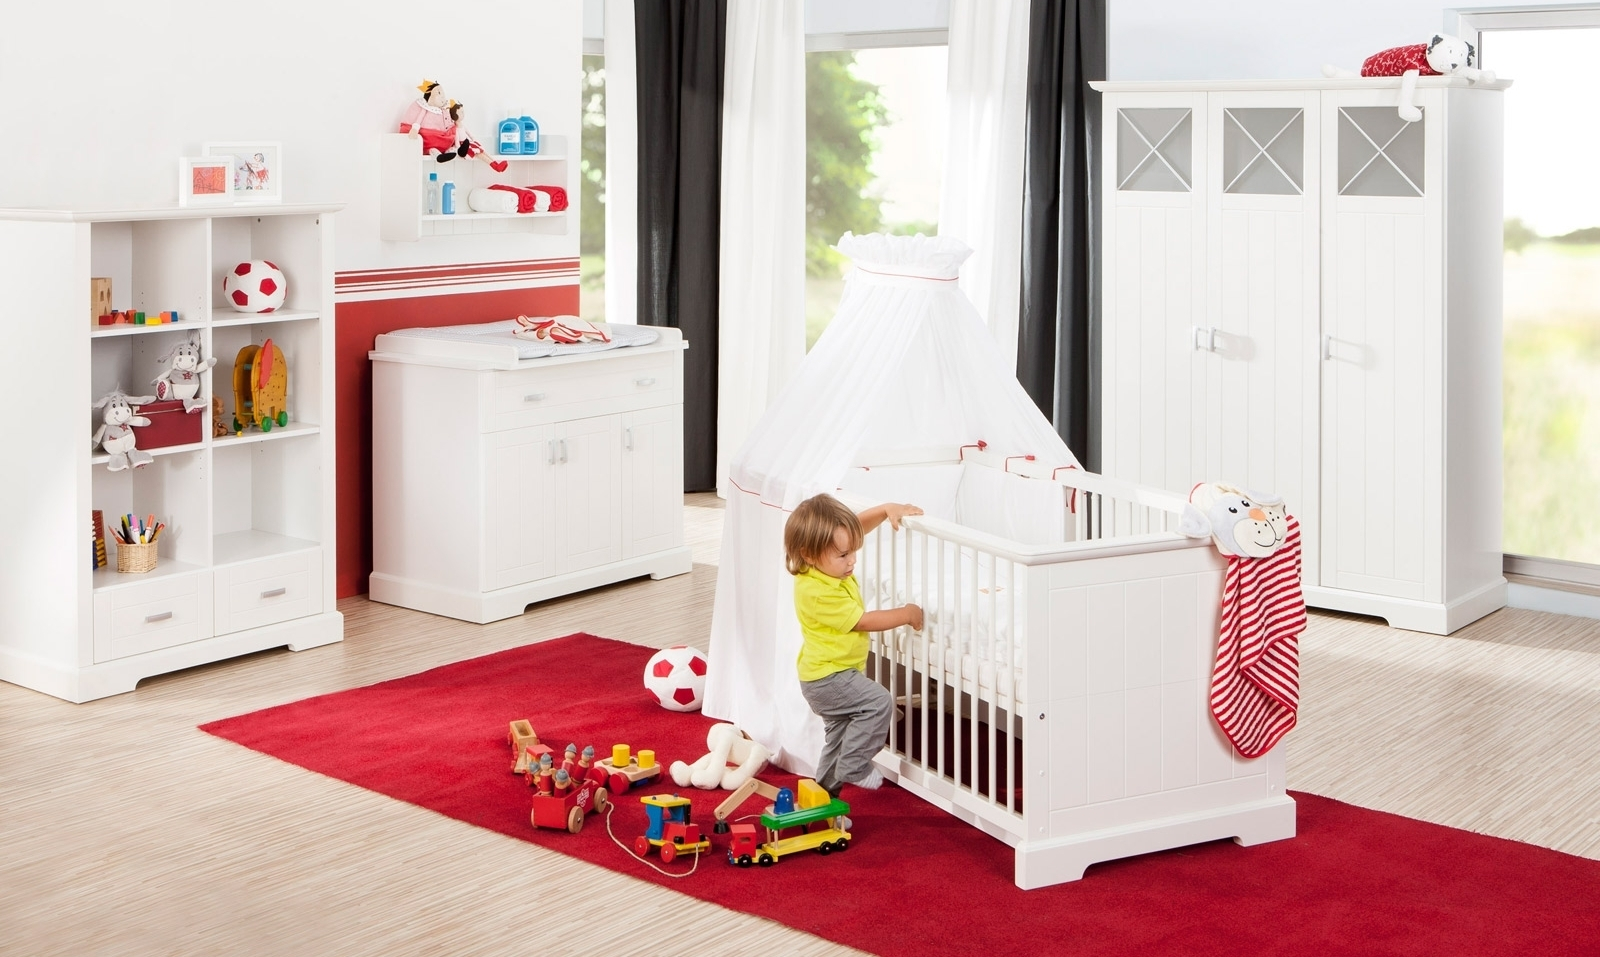 Chambre b b compl te lit et commode cassini geuther - Chambre bebe lit commode ...